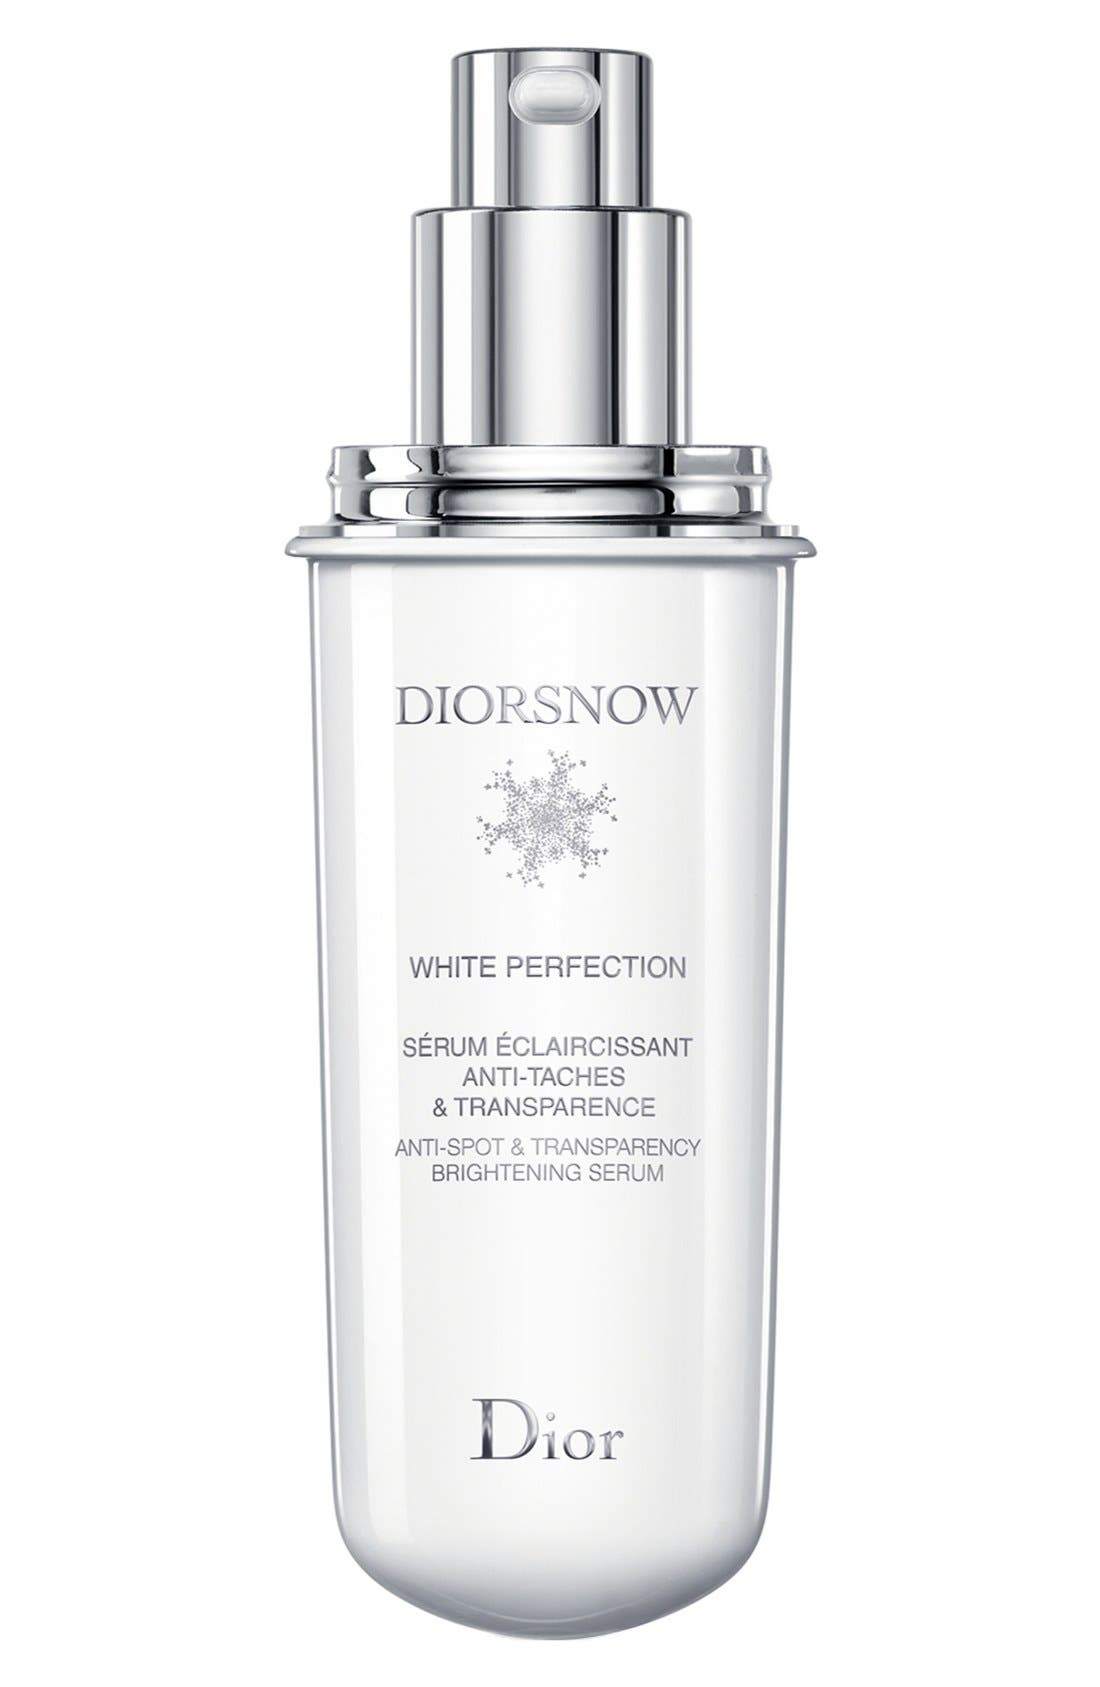 Dior 'Diorsnow' White Perfection Anti-Spot & Transparency Brightening Serum Refill